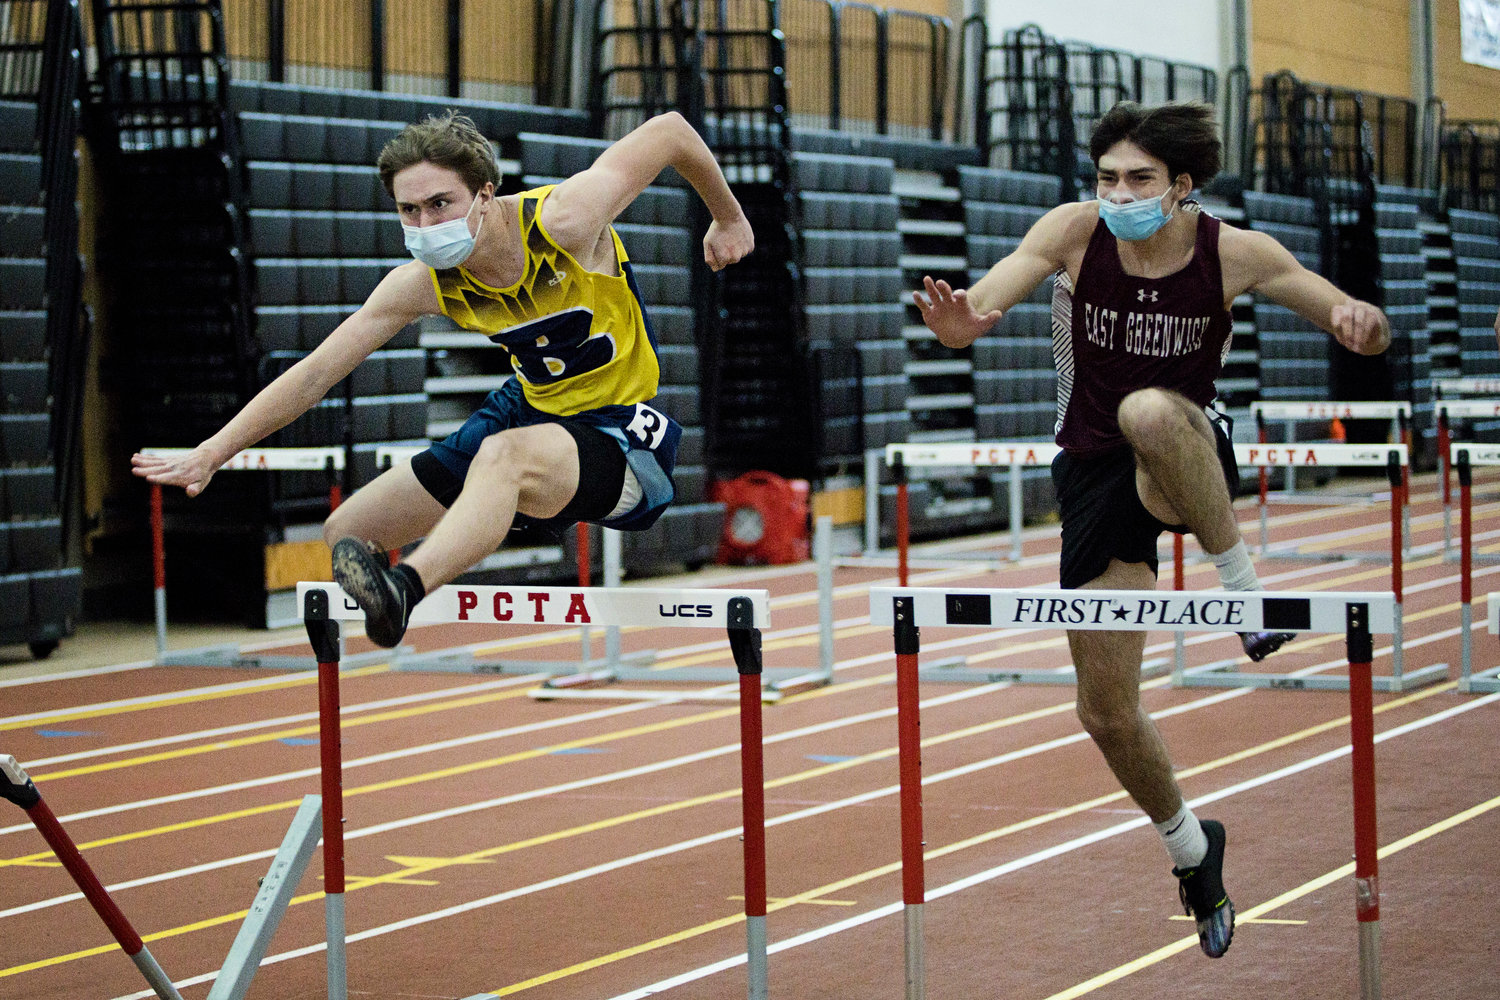 Barrington's Jackson Duffy competes in the boys 55 Meter Hurdle event at the Indoor Track State Championships, Saturday.